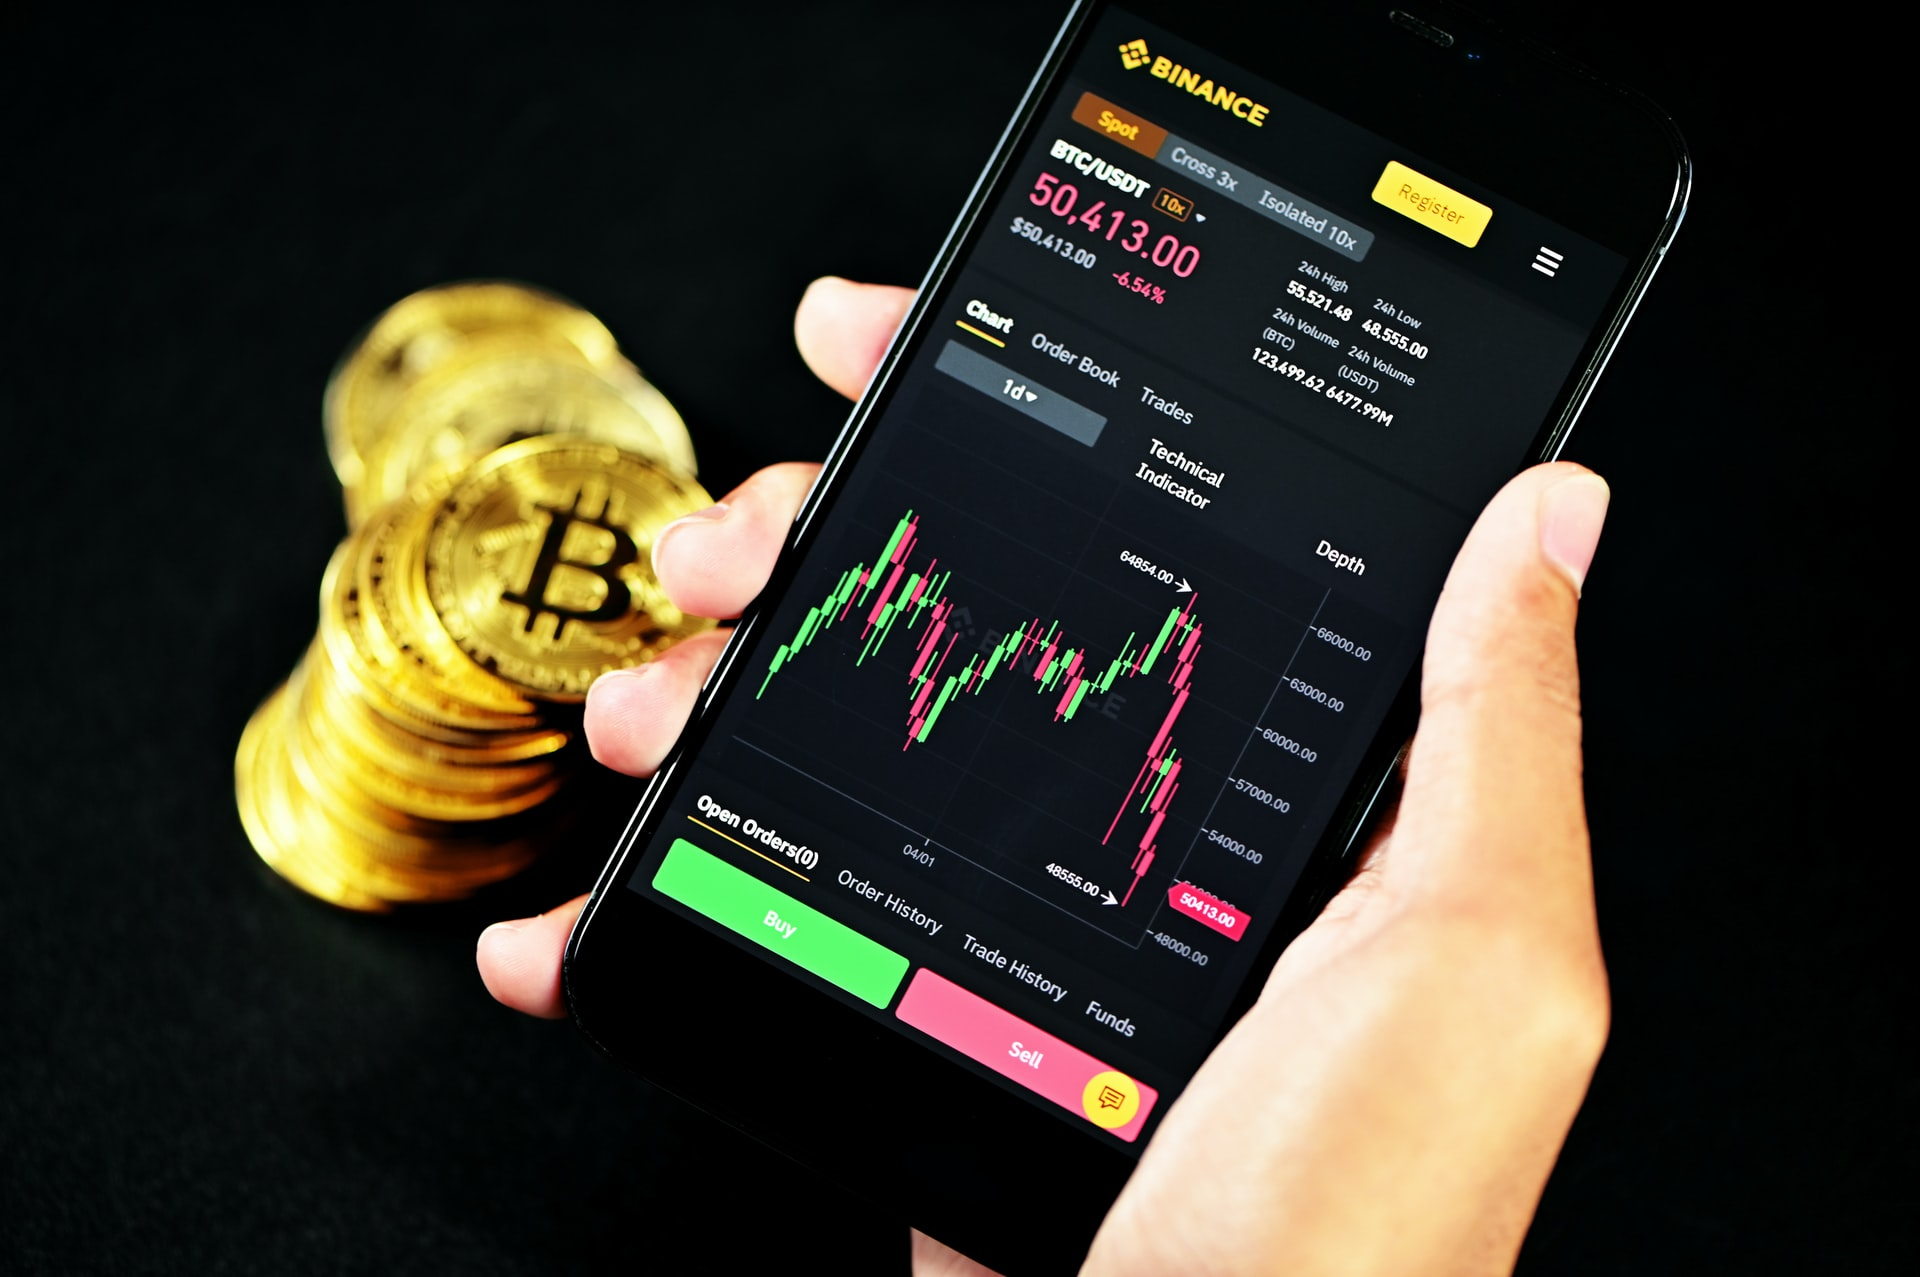 Read the full article Cryptocurrencies – investment or gamble